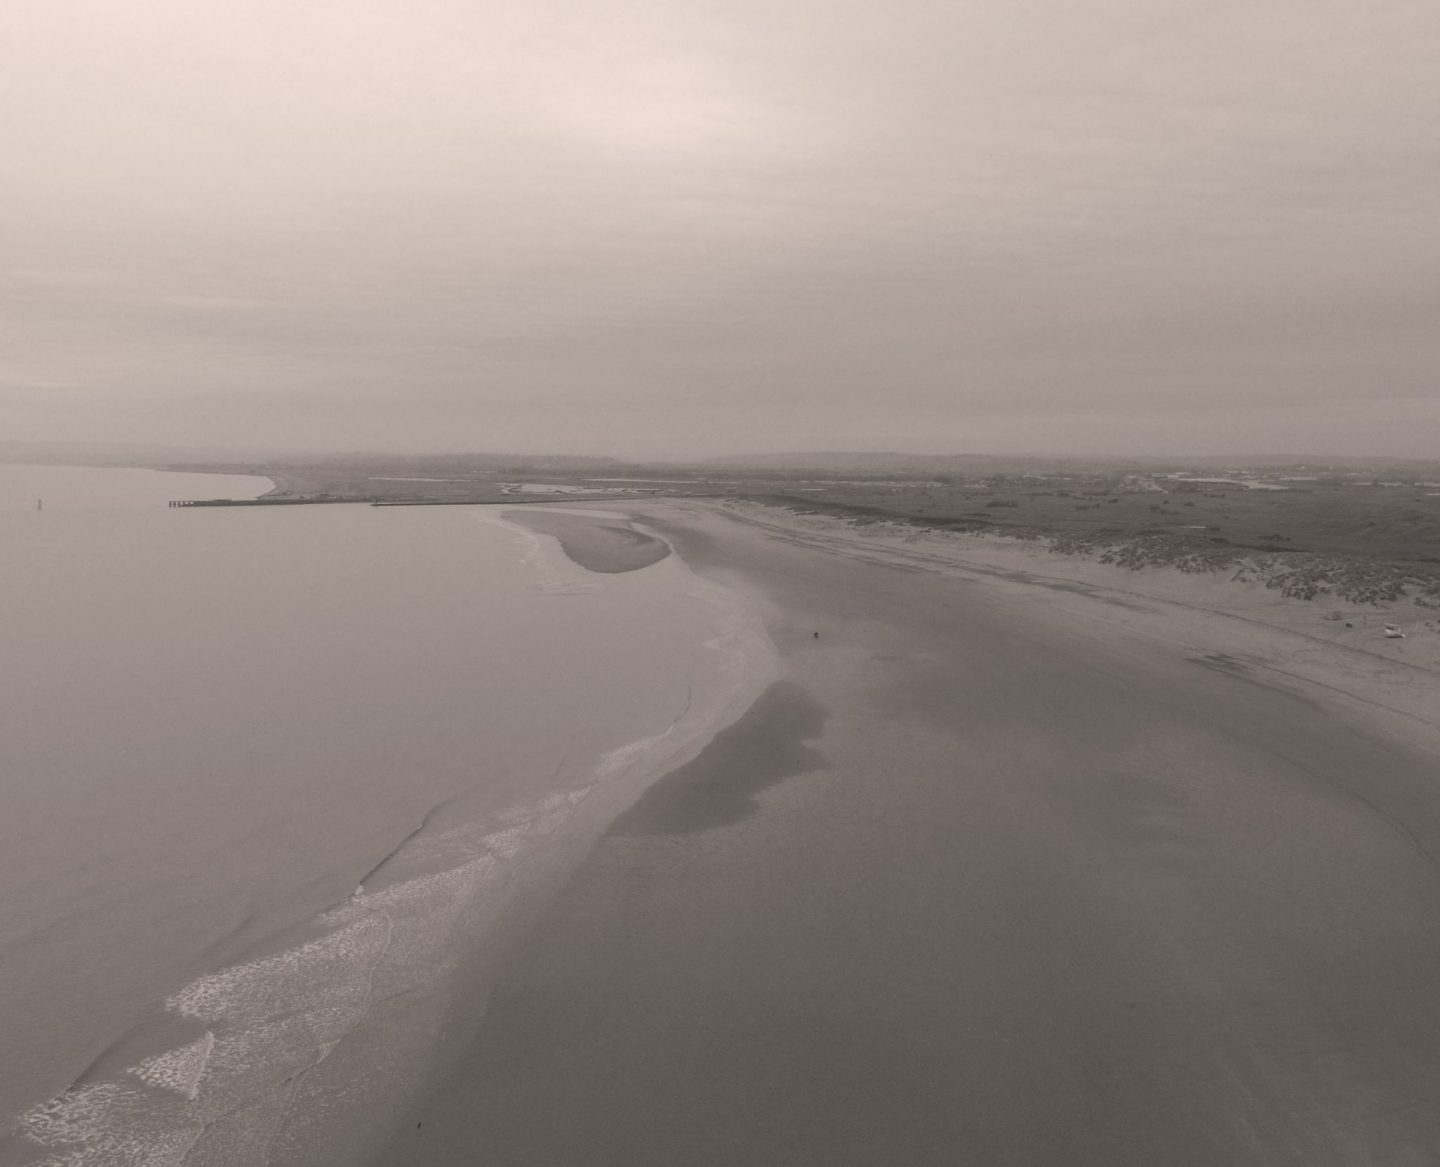 Camber Sands, Camber, Camber Sands beach, drone photograph, drone photo, Sussex coast, East Sussex, DJI Phantom, dadbloguk, uk dad blogger, dadbloguk.com, dad blog uk